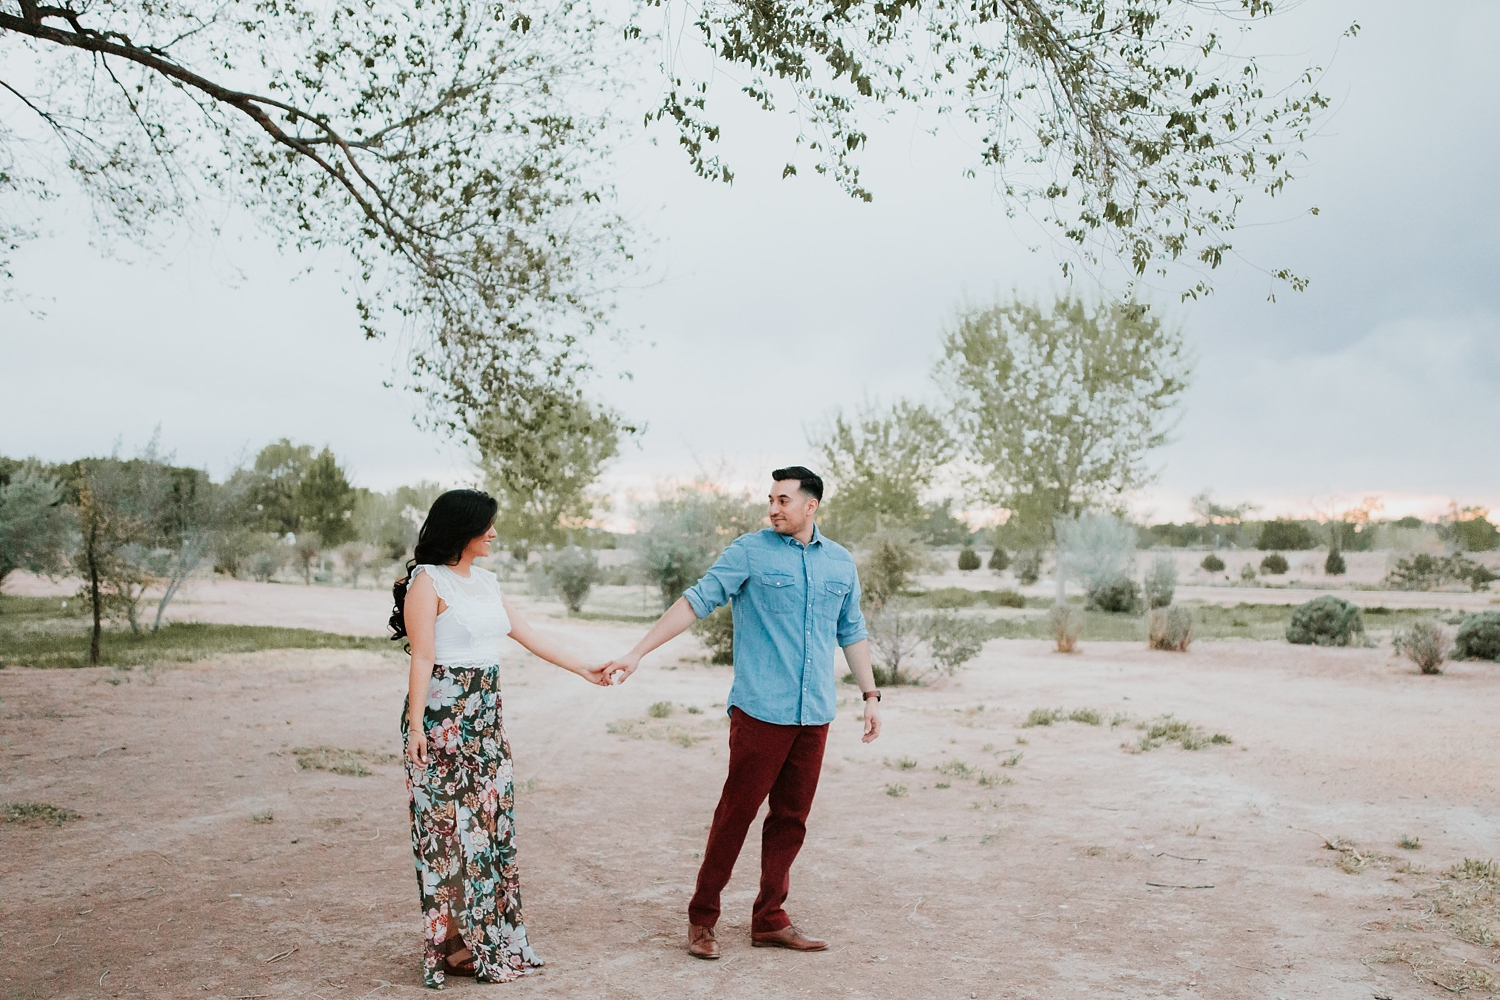 Alicia+lucia+photography+-+albuquerque+wedding+photographer+-+santa+fe+wedding+photography+-+new+mexico+wedding+photographer+-+new+mexico+engagement+-+new+mexico+desert+engagement+-+spring+bosque+engagement_0014.jpg